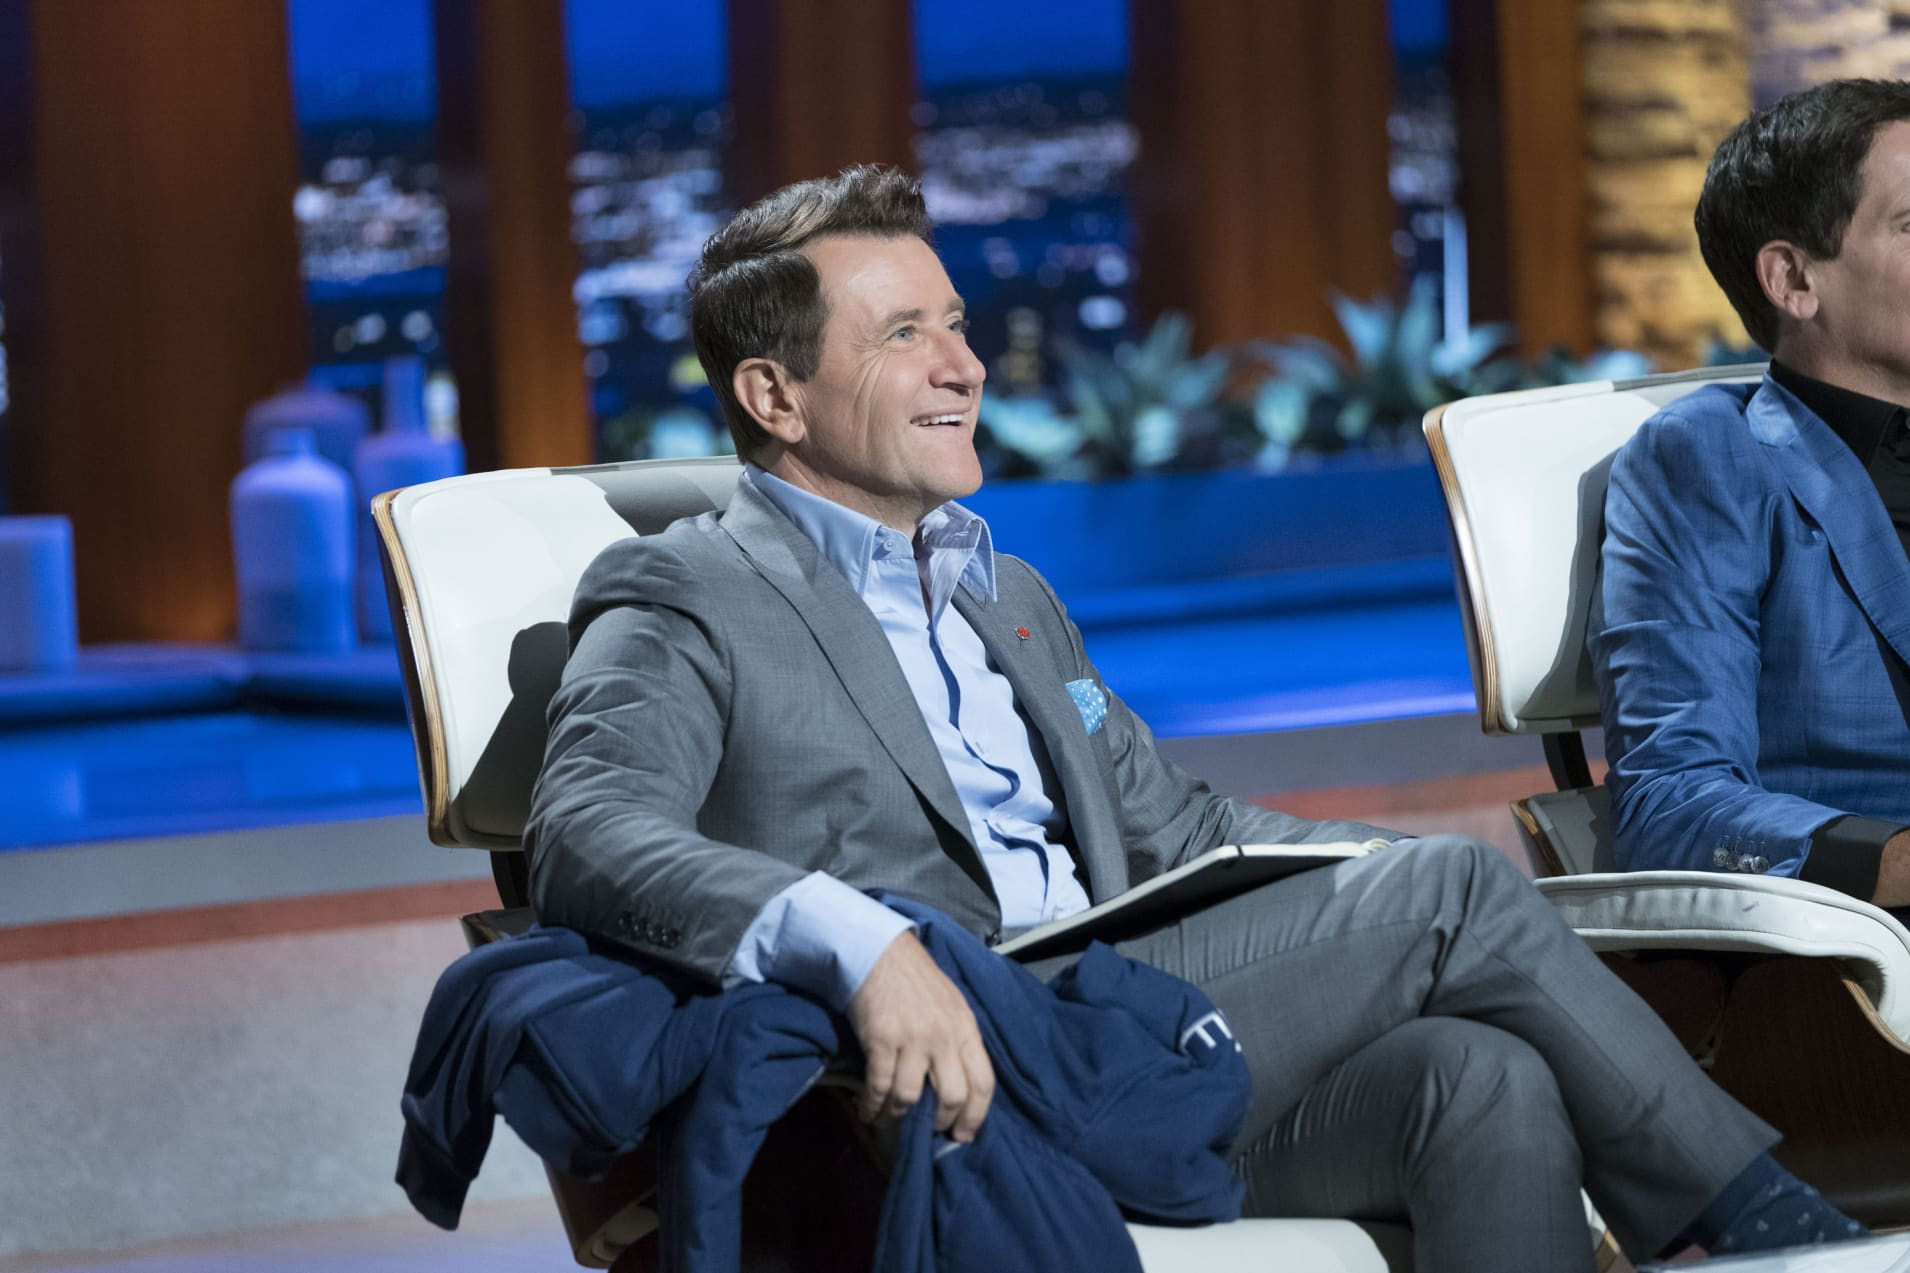 Shark Tank star Robert Herjavec: How my liberal arts degree taught me the most important skill in business